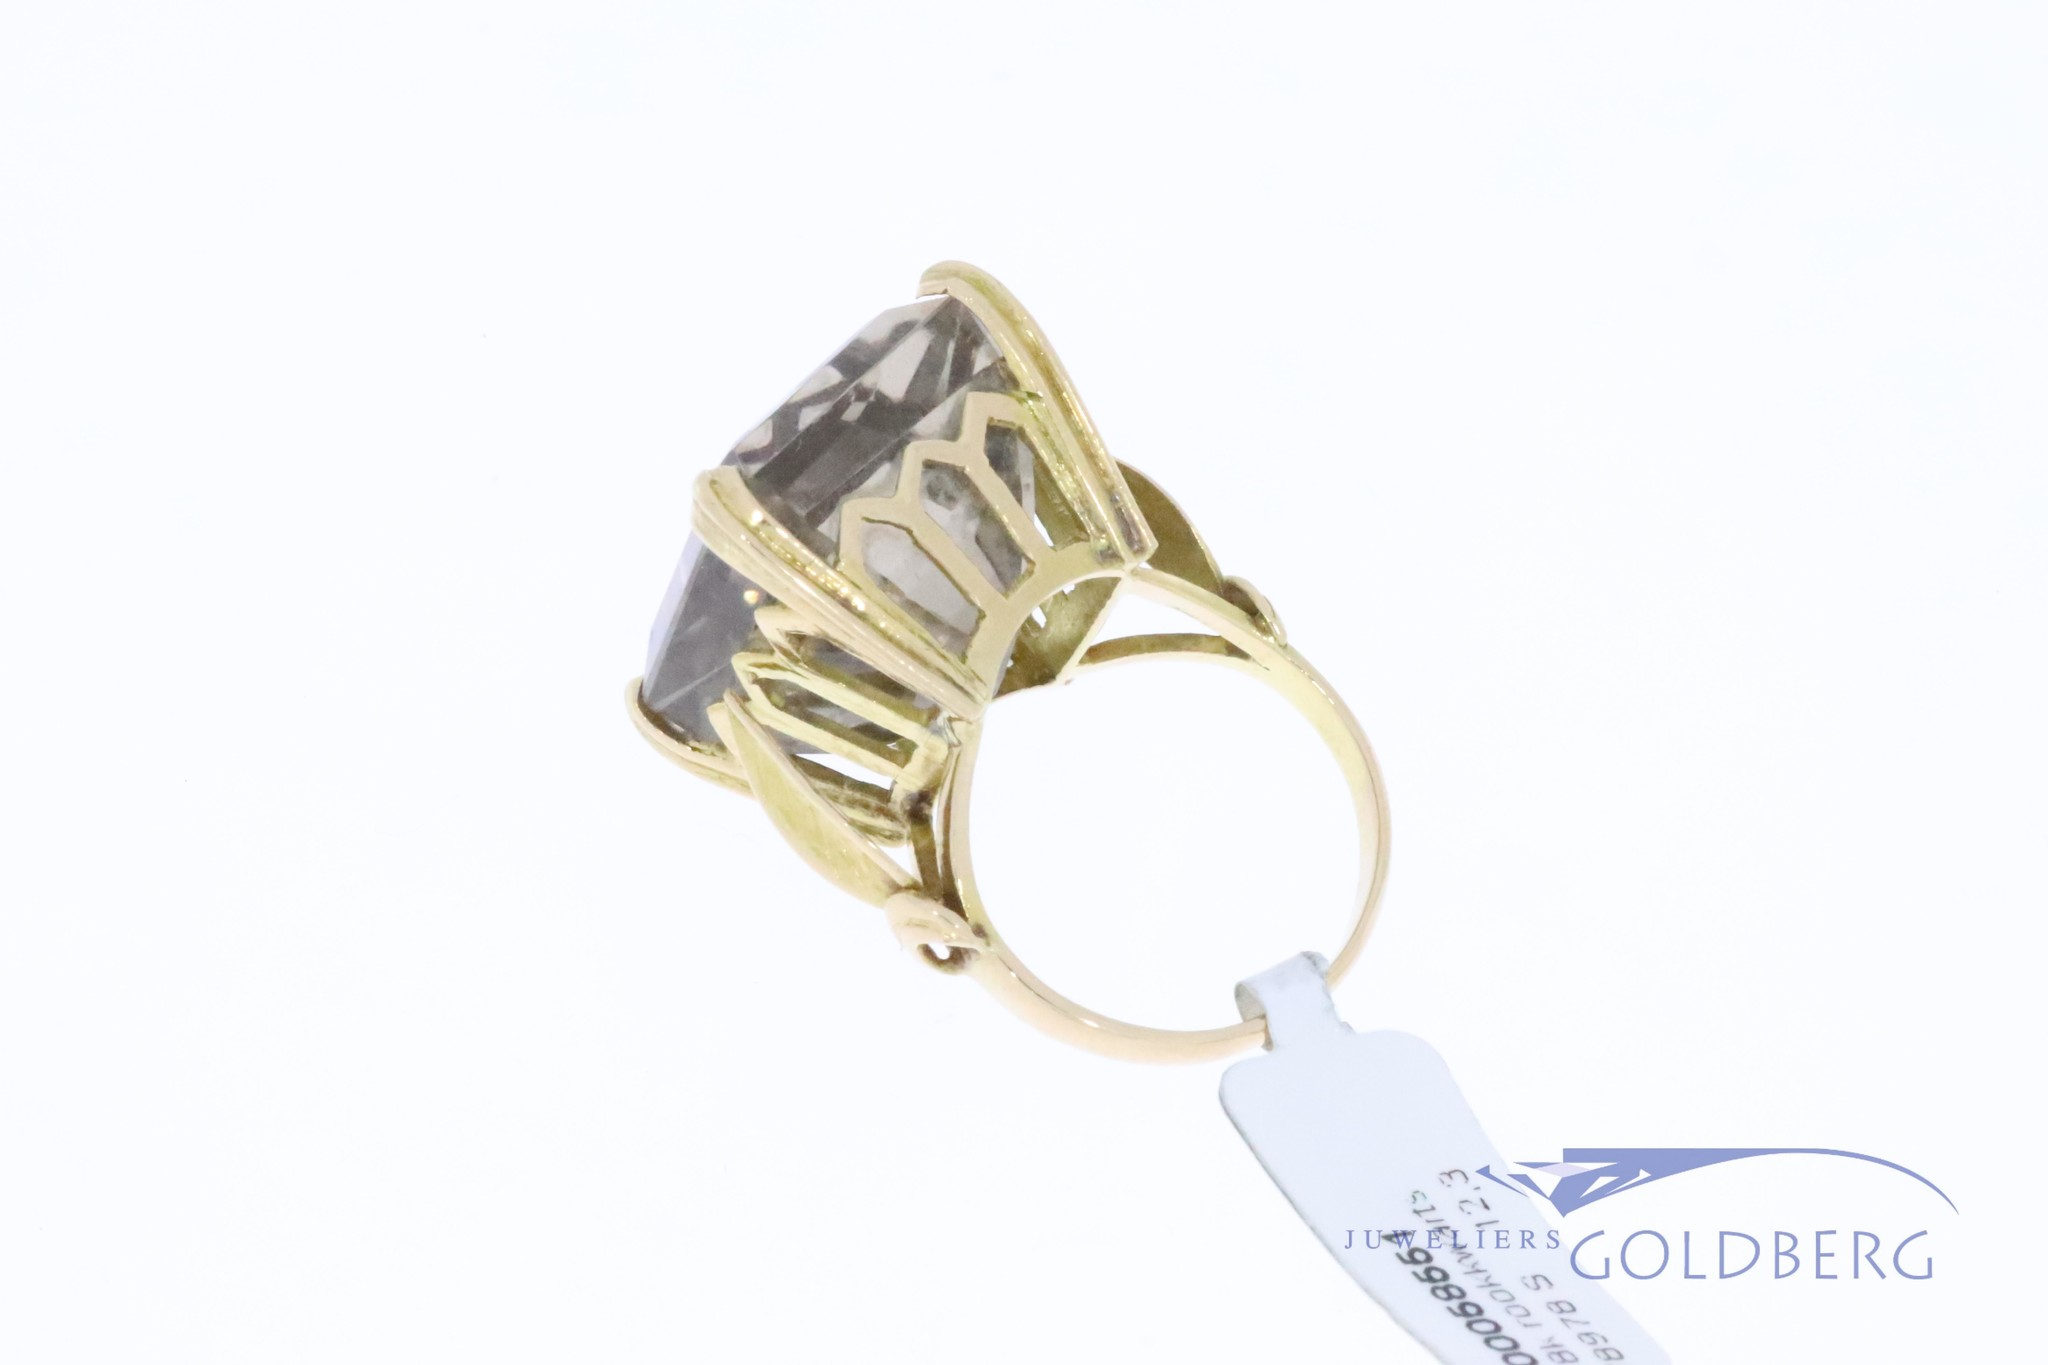 Very, very large 18k gold vintage ring with smoky quartz